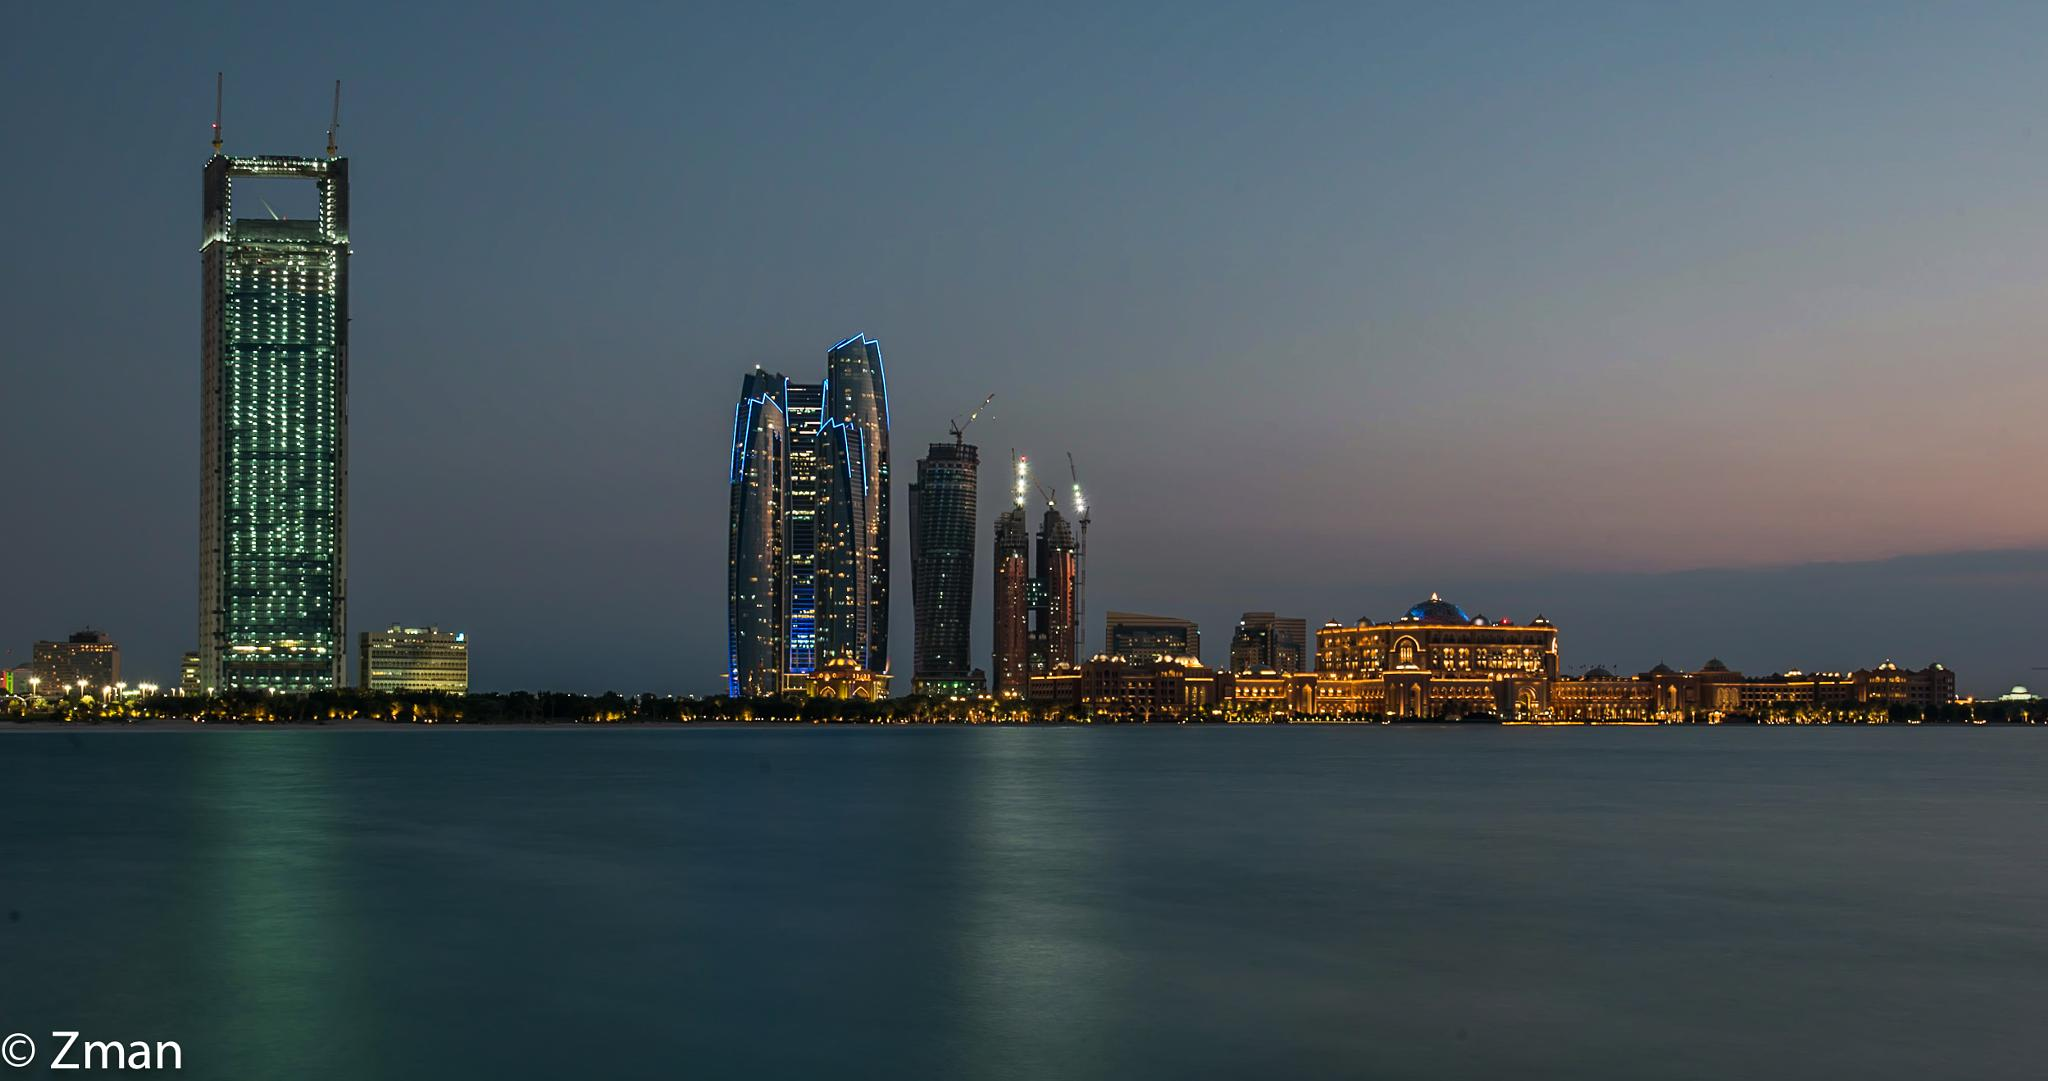 Union Towers, ADNOC HQ and The Conference Palace Hotel by muhammad.nasser.963